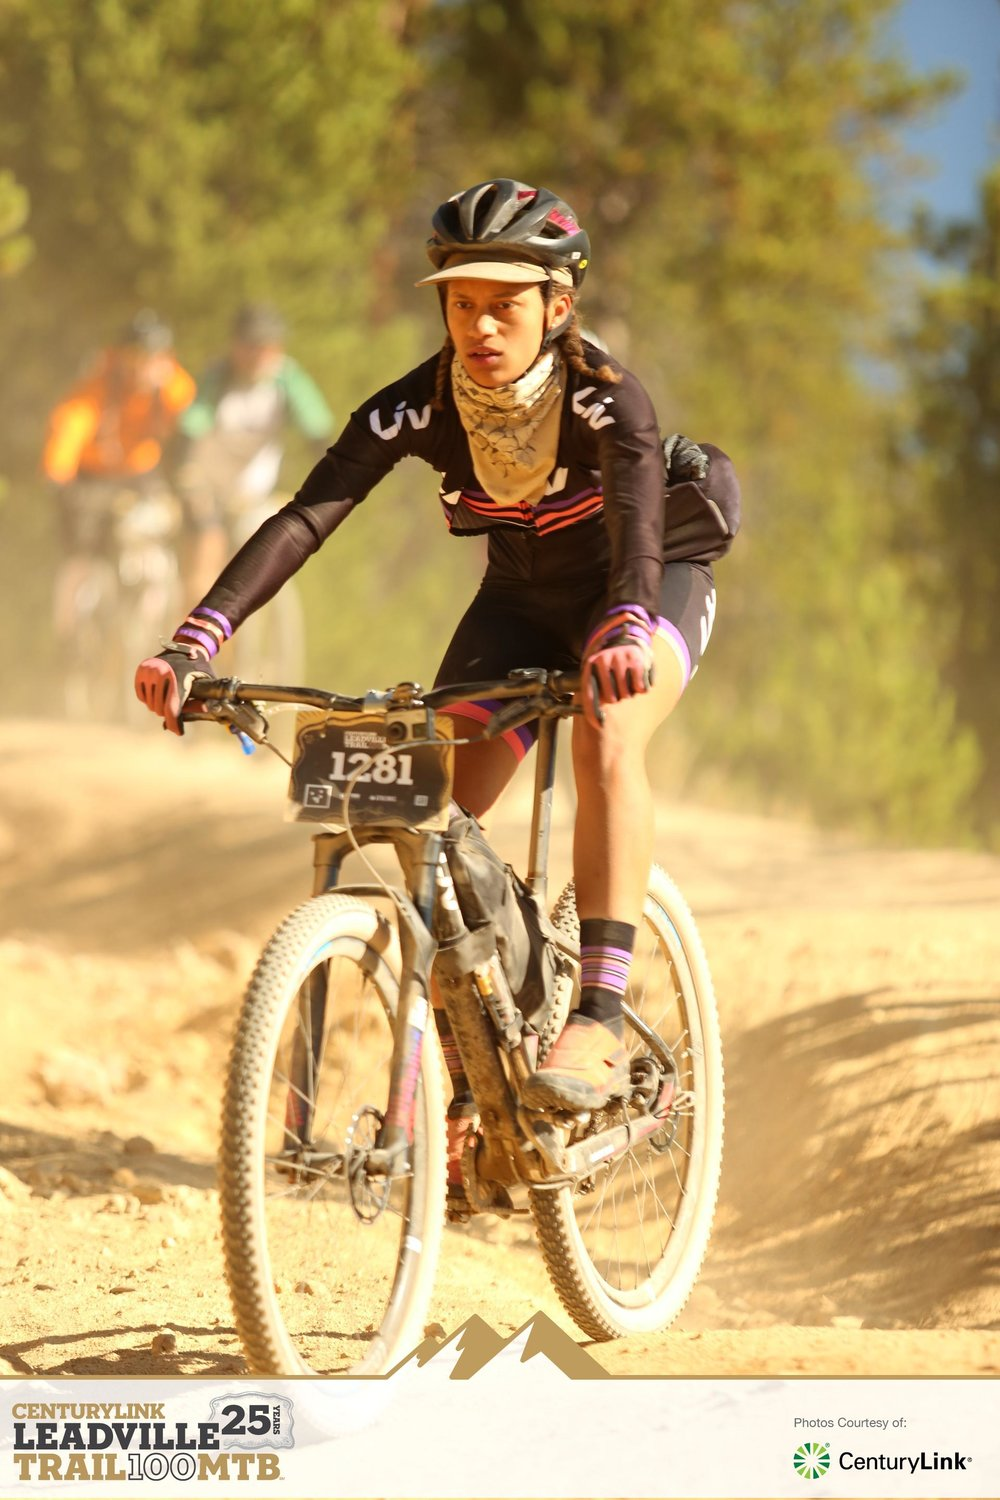 Sam taking on Leadville on her Single speed Liv Mountain Bike.